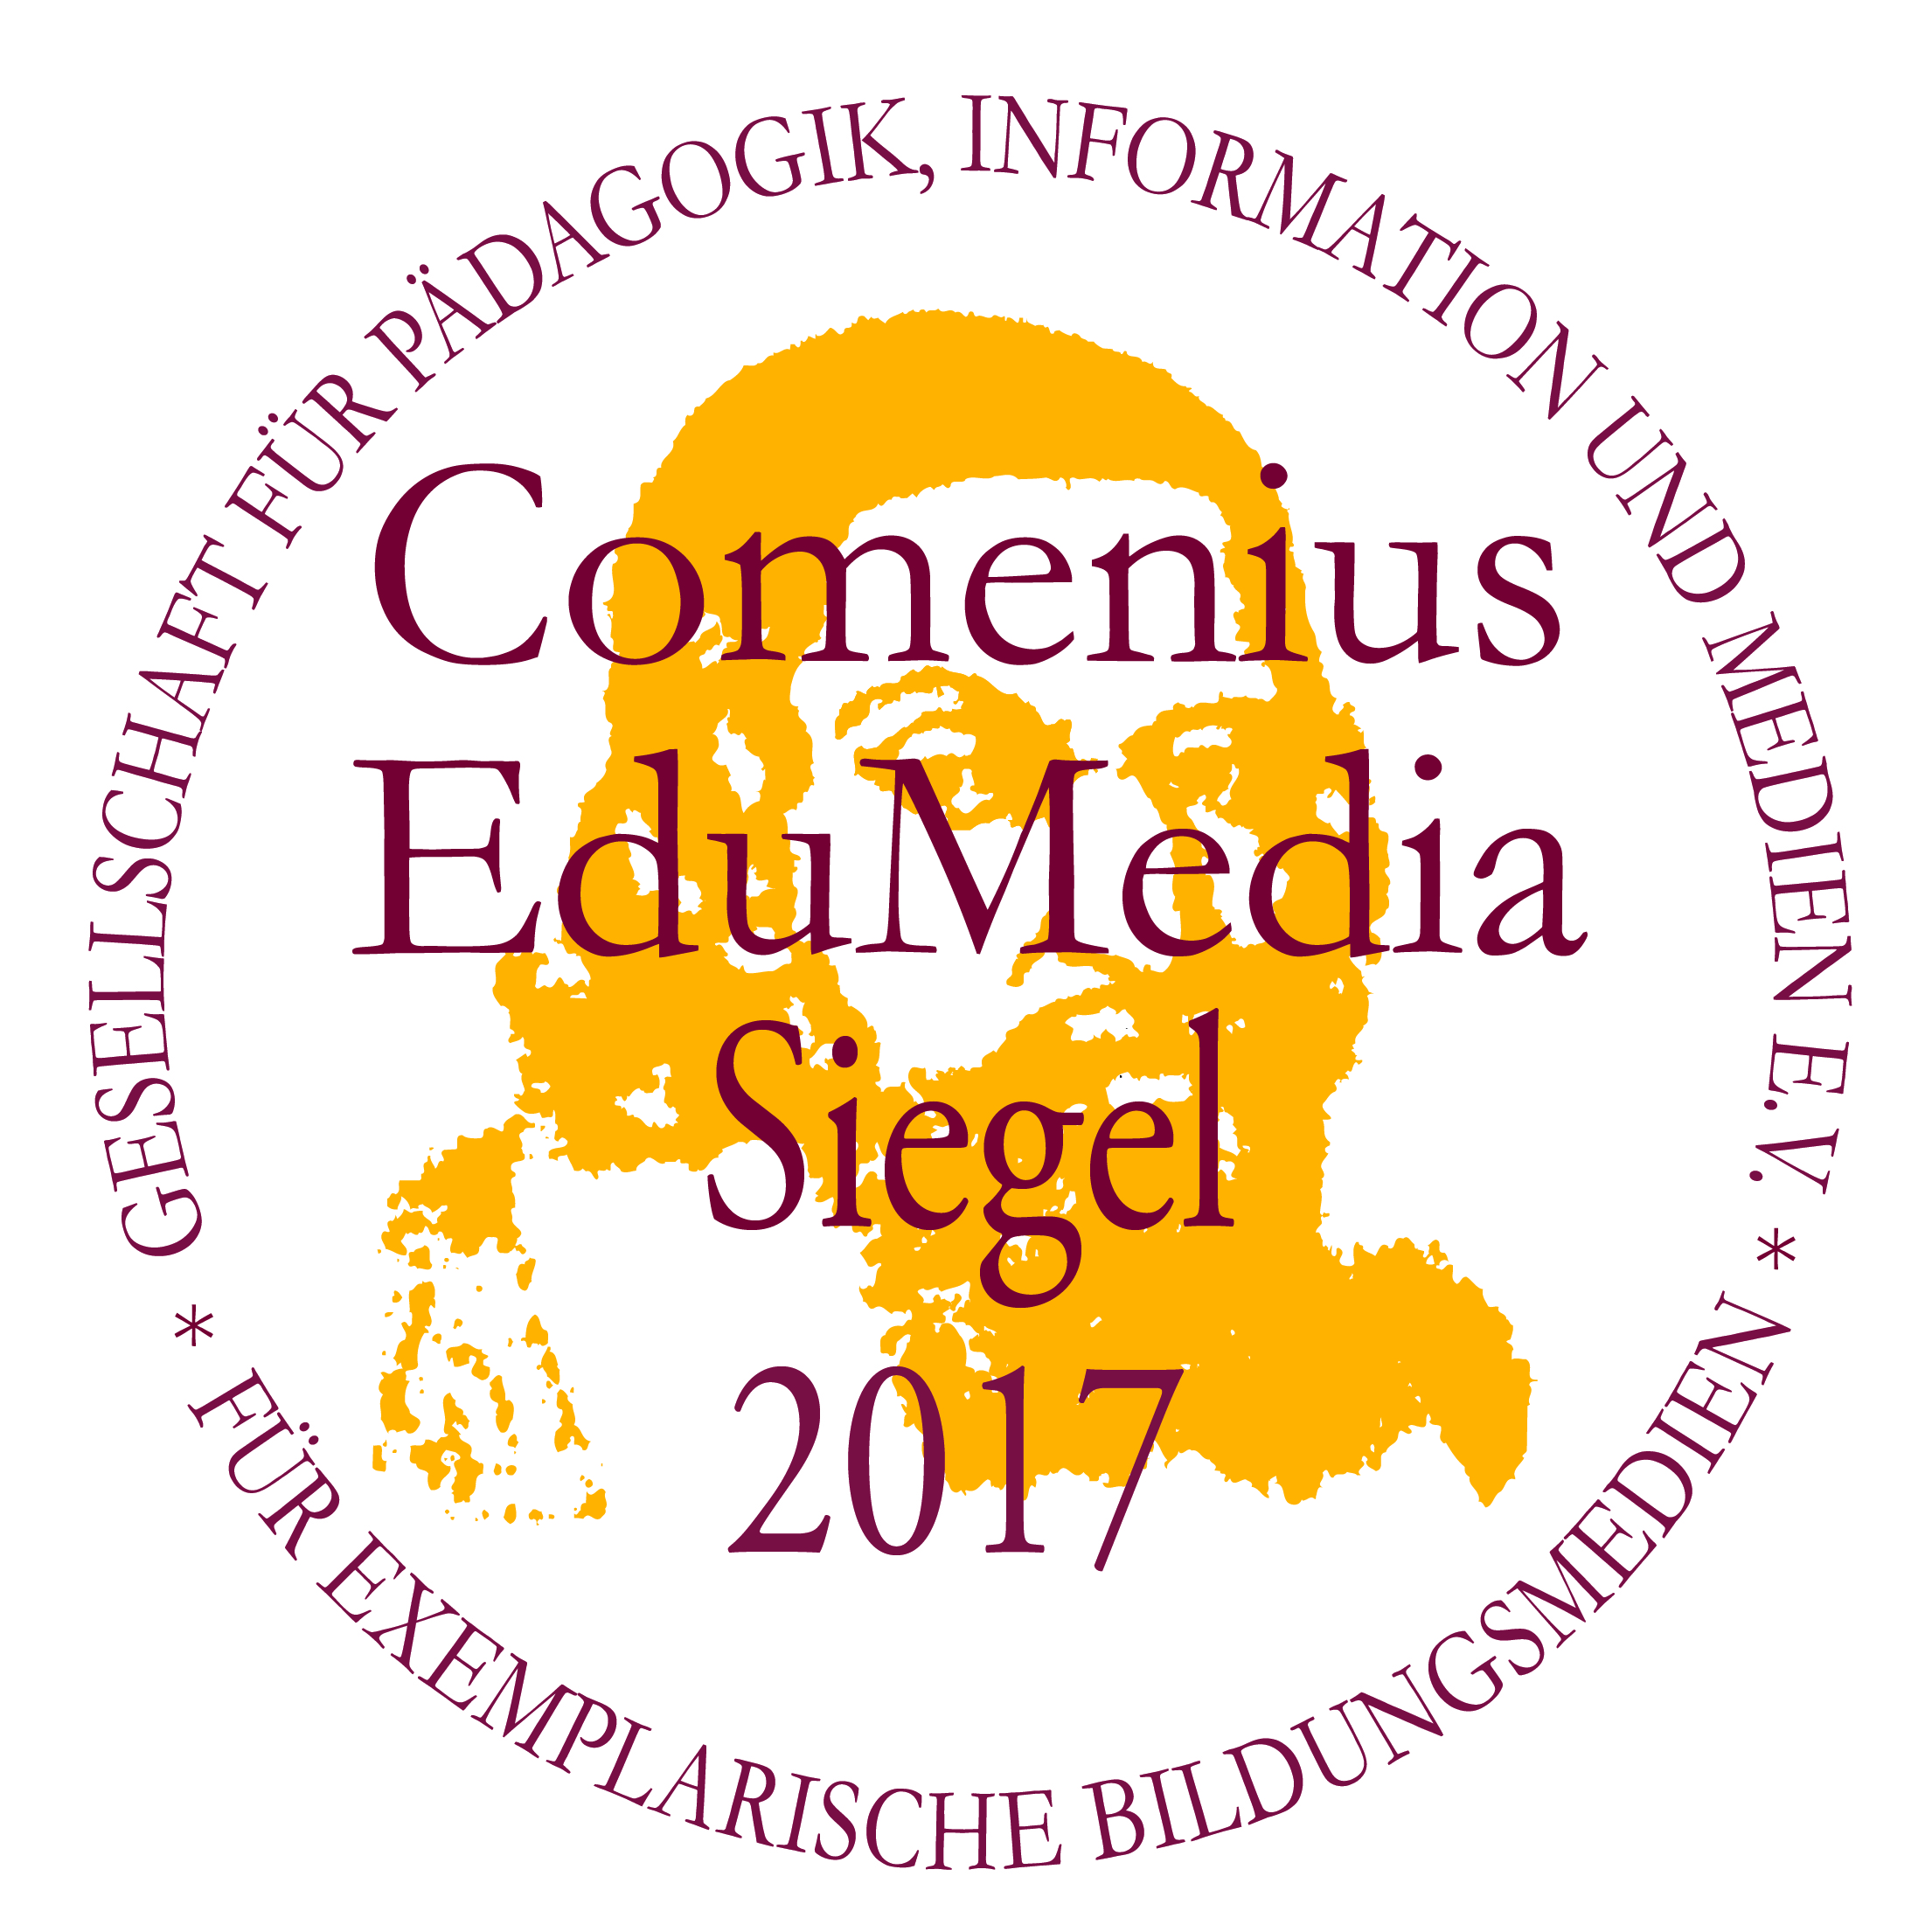 Comenius Siegel 2017